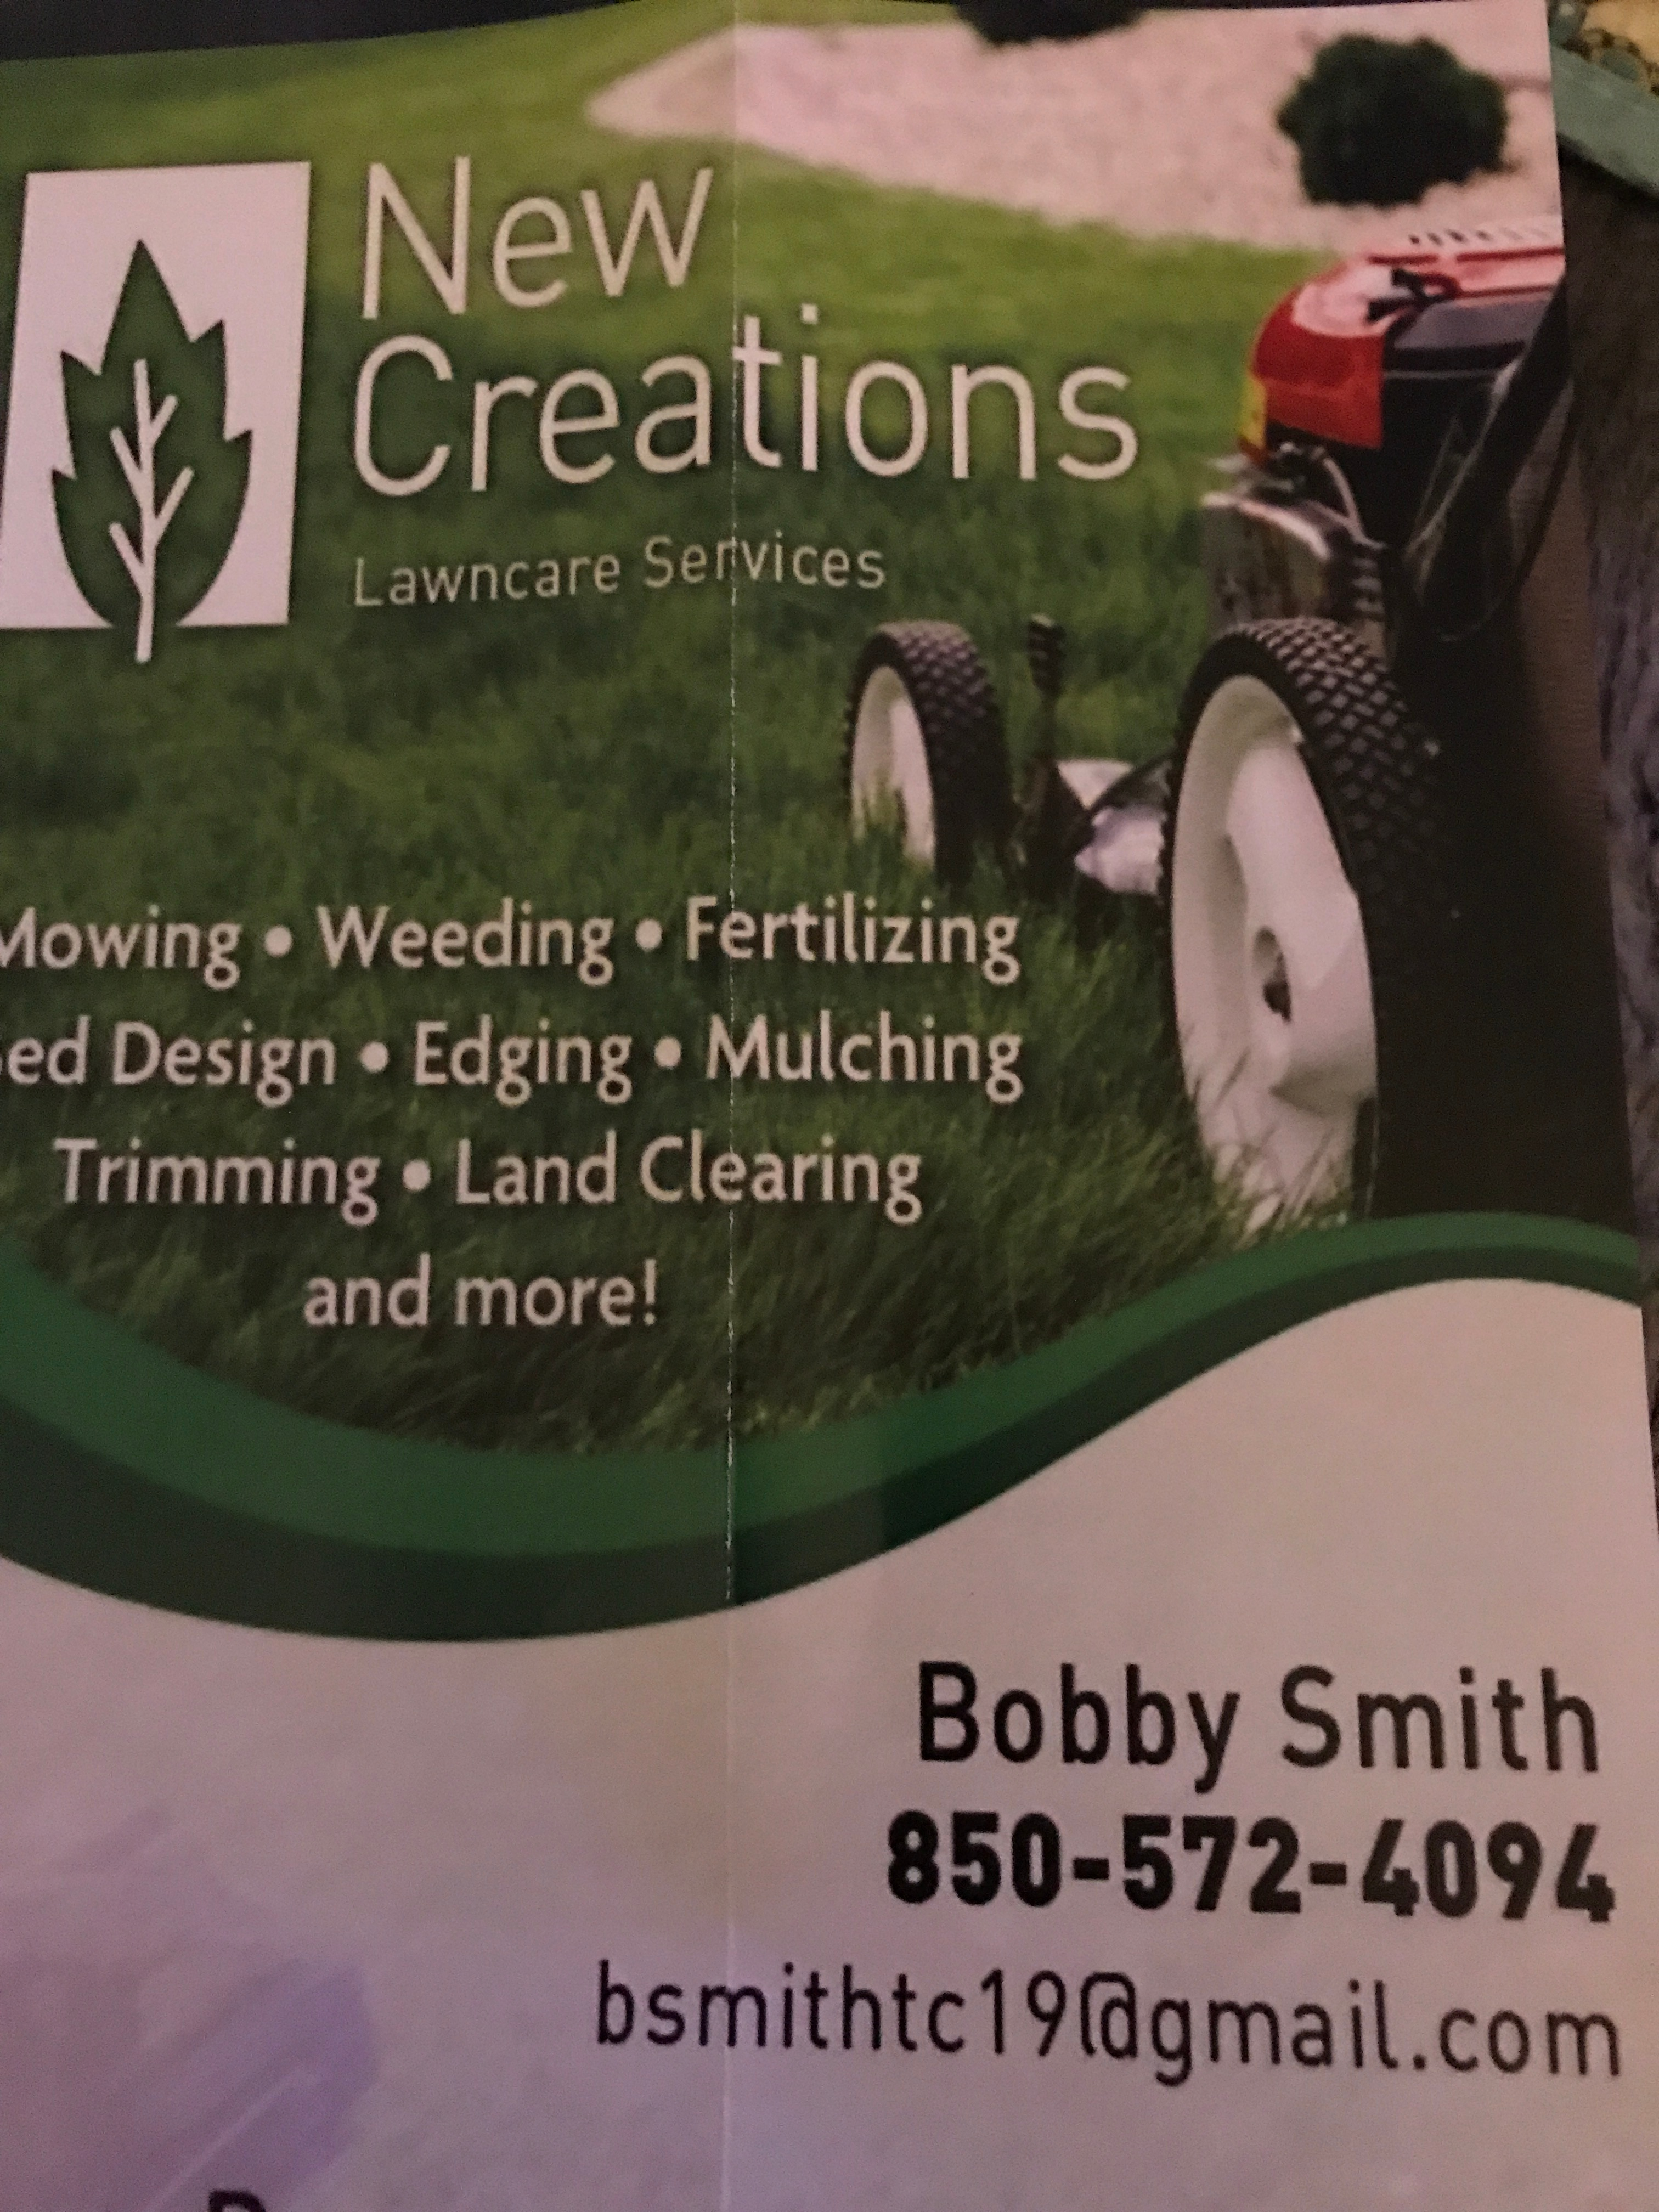 New Creations Lawn Care Services logo